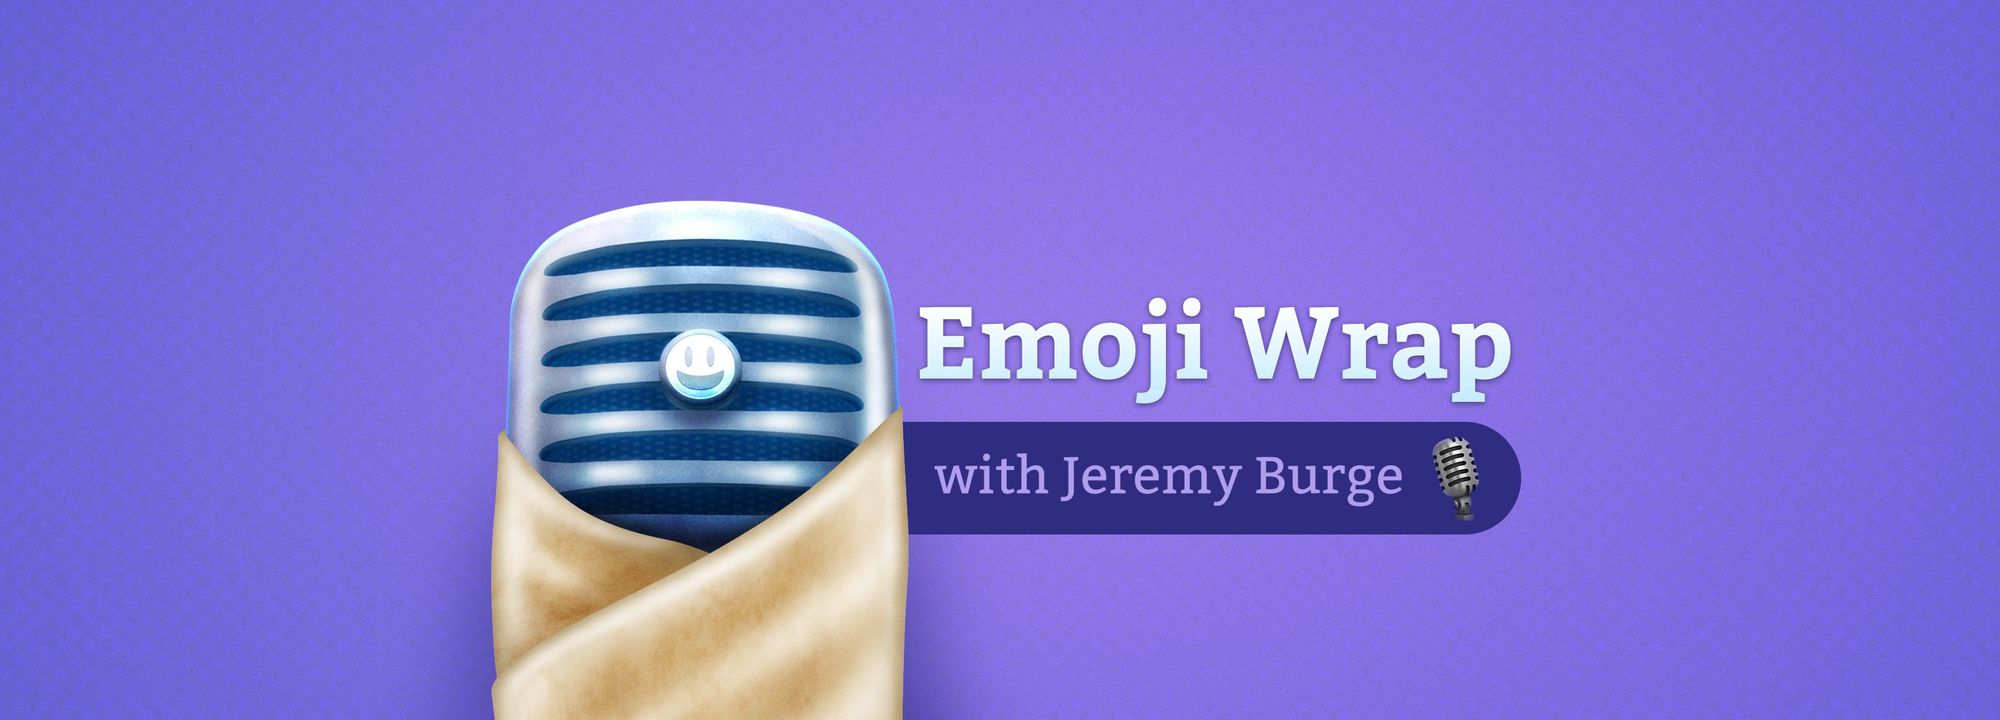 Microsoft Emoji Team on Emoji Wrap